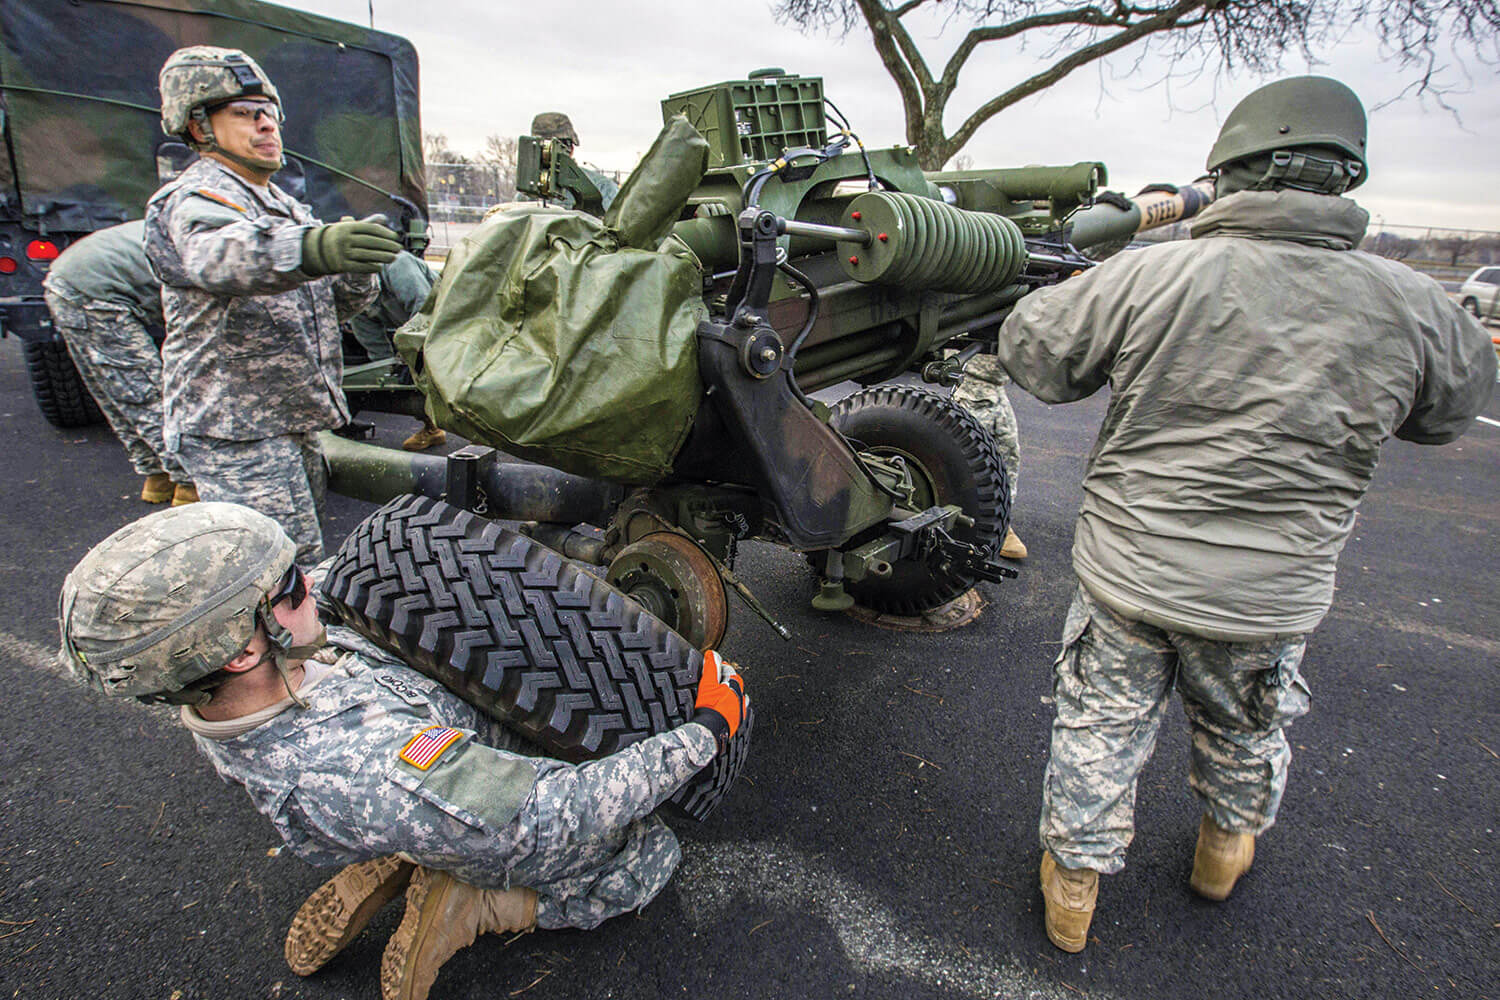 New Jersey Army National Guard Soldiers prepare an M119A3 howitzer for a 19-gun salute as part of the inauguration ceremony for New Jersey Gov. Phil Murphy at the War Memorial in Trenton, N.J., Jan. 16, 2018. New Jersey National Guard photo by Mark C. Olsen.